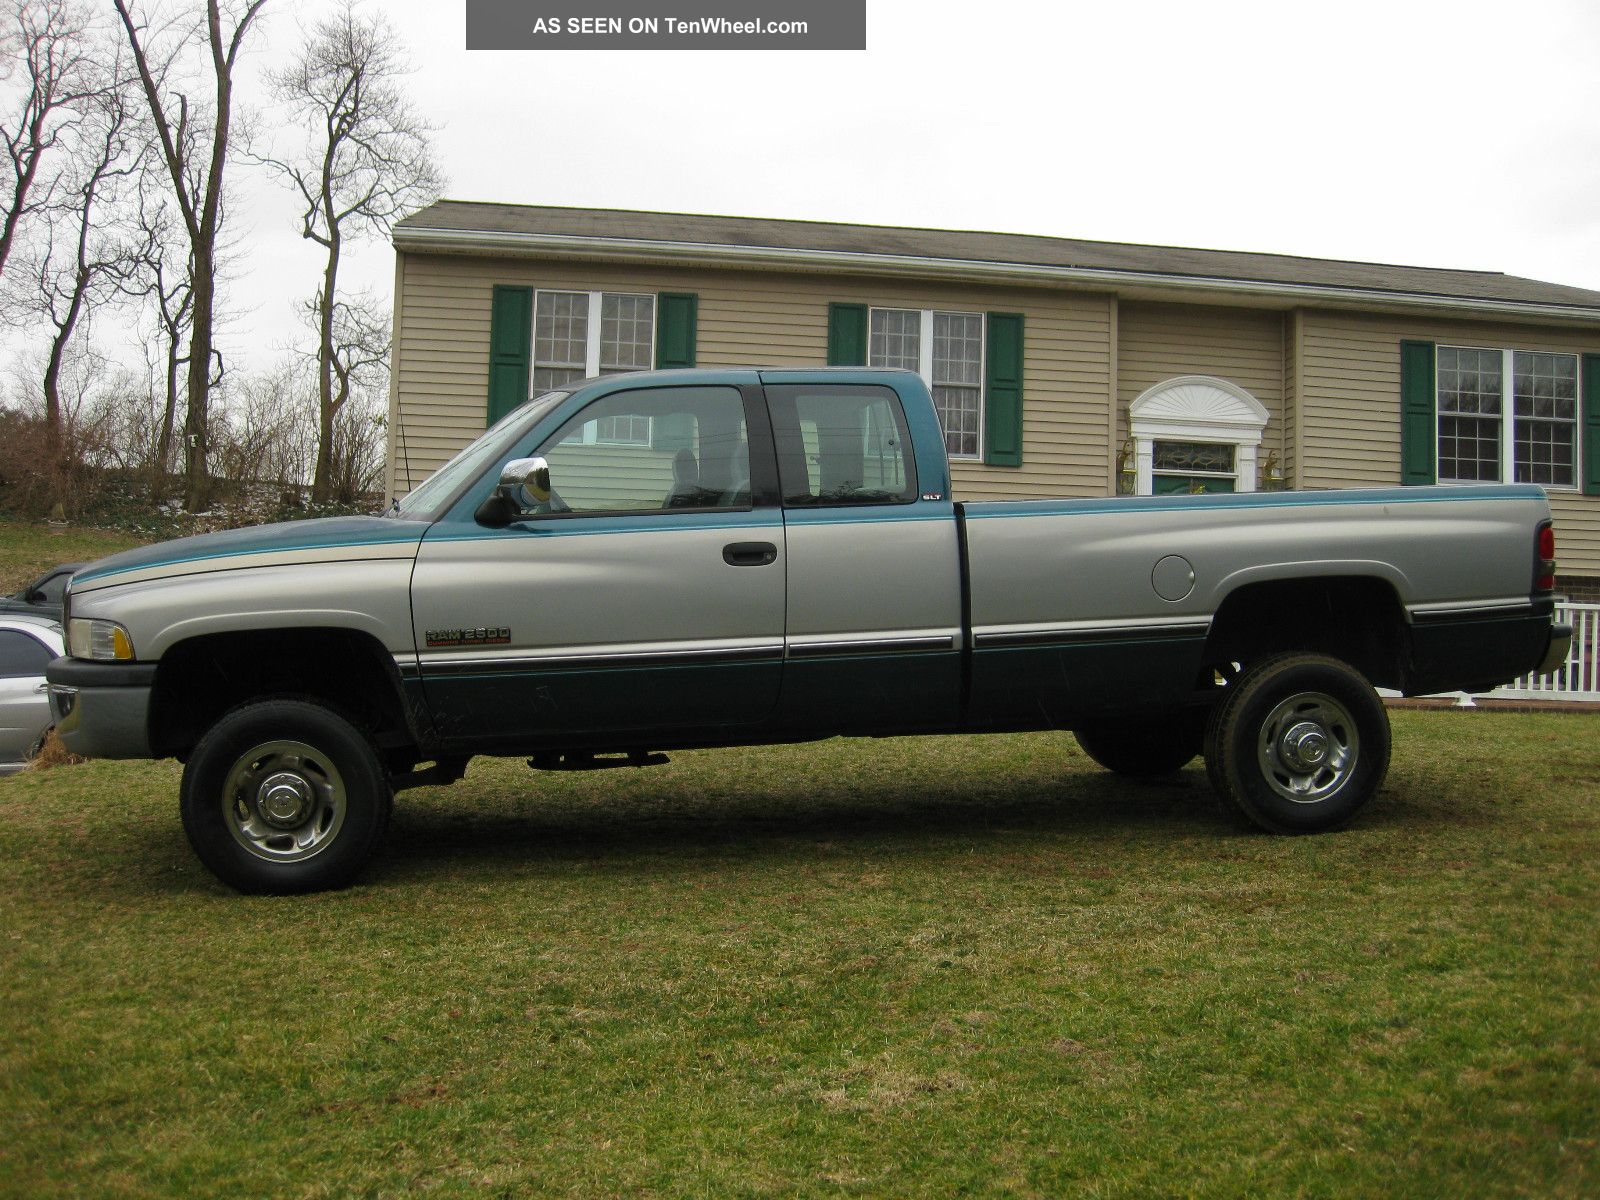 1996 dodge ram 2500 larime slt diesel. Black Bedroom Furniture Sets. Home Design Ideas